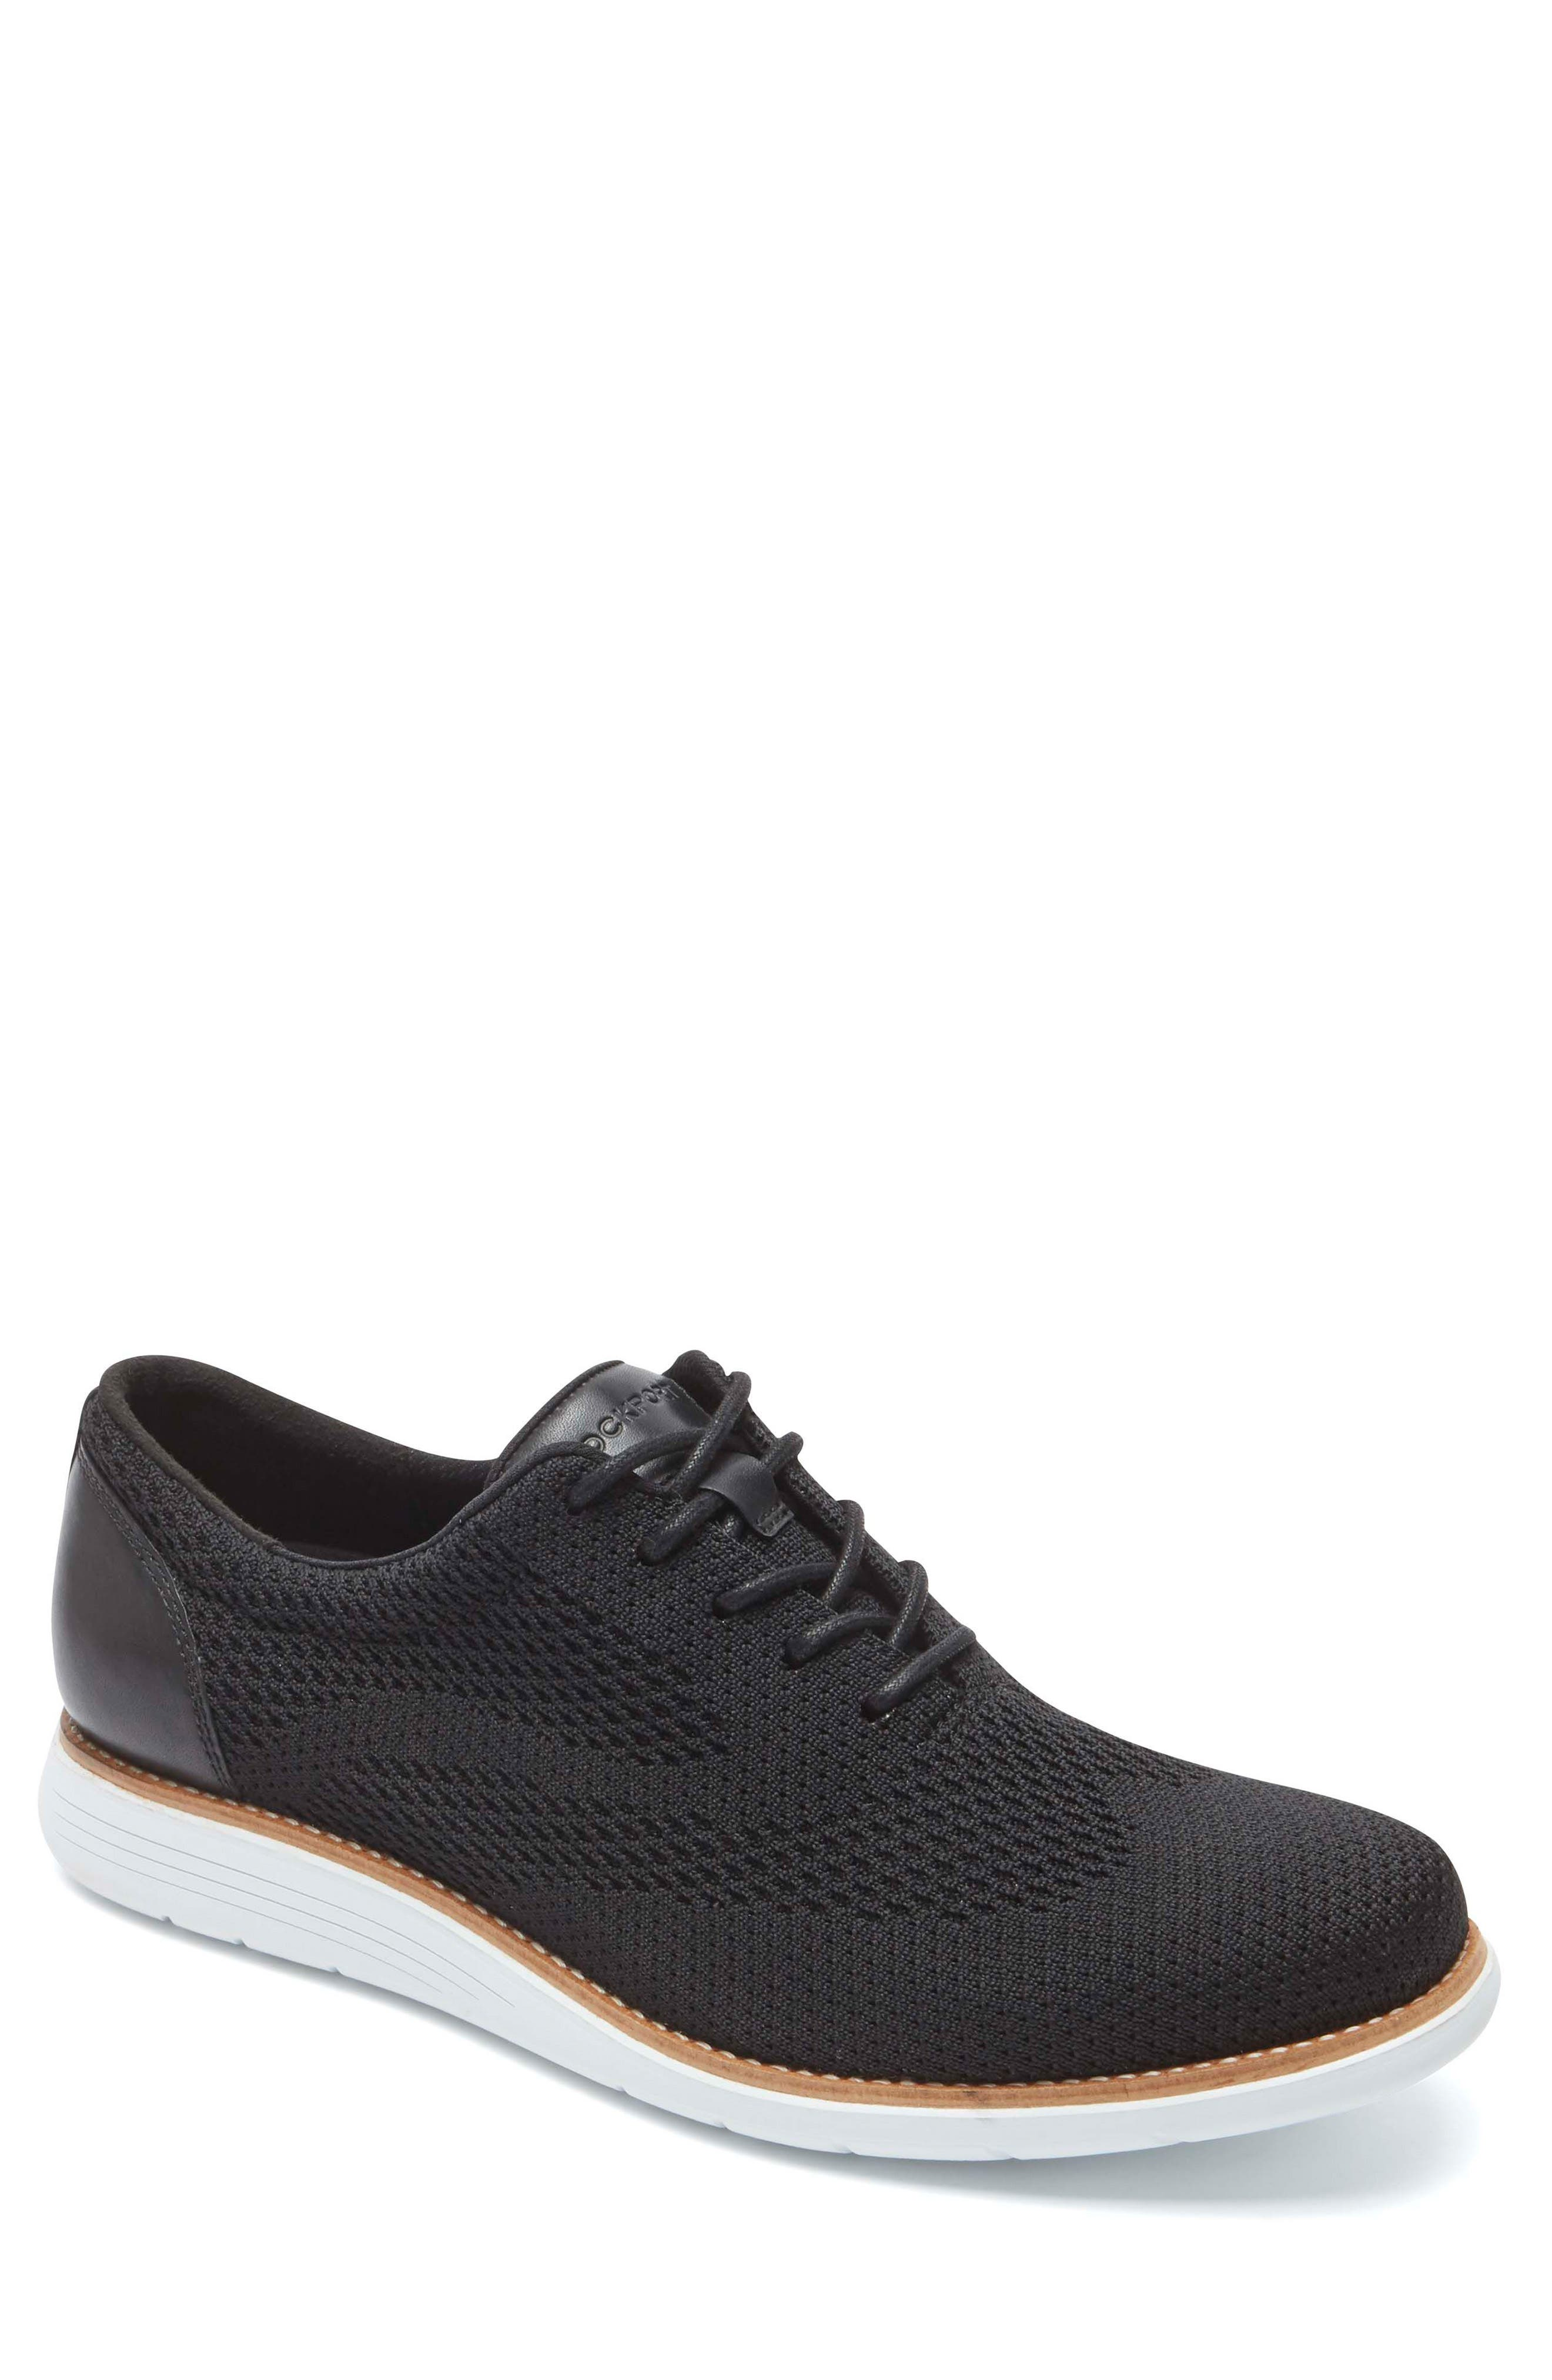 Total Motion Sport Oxford,                         Main,                         color, Black Leather